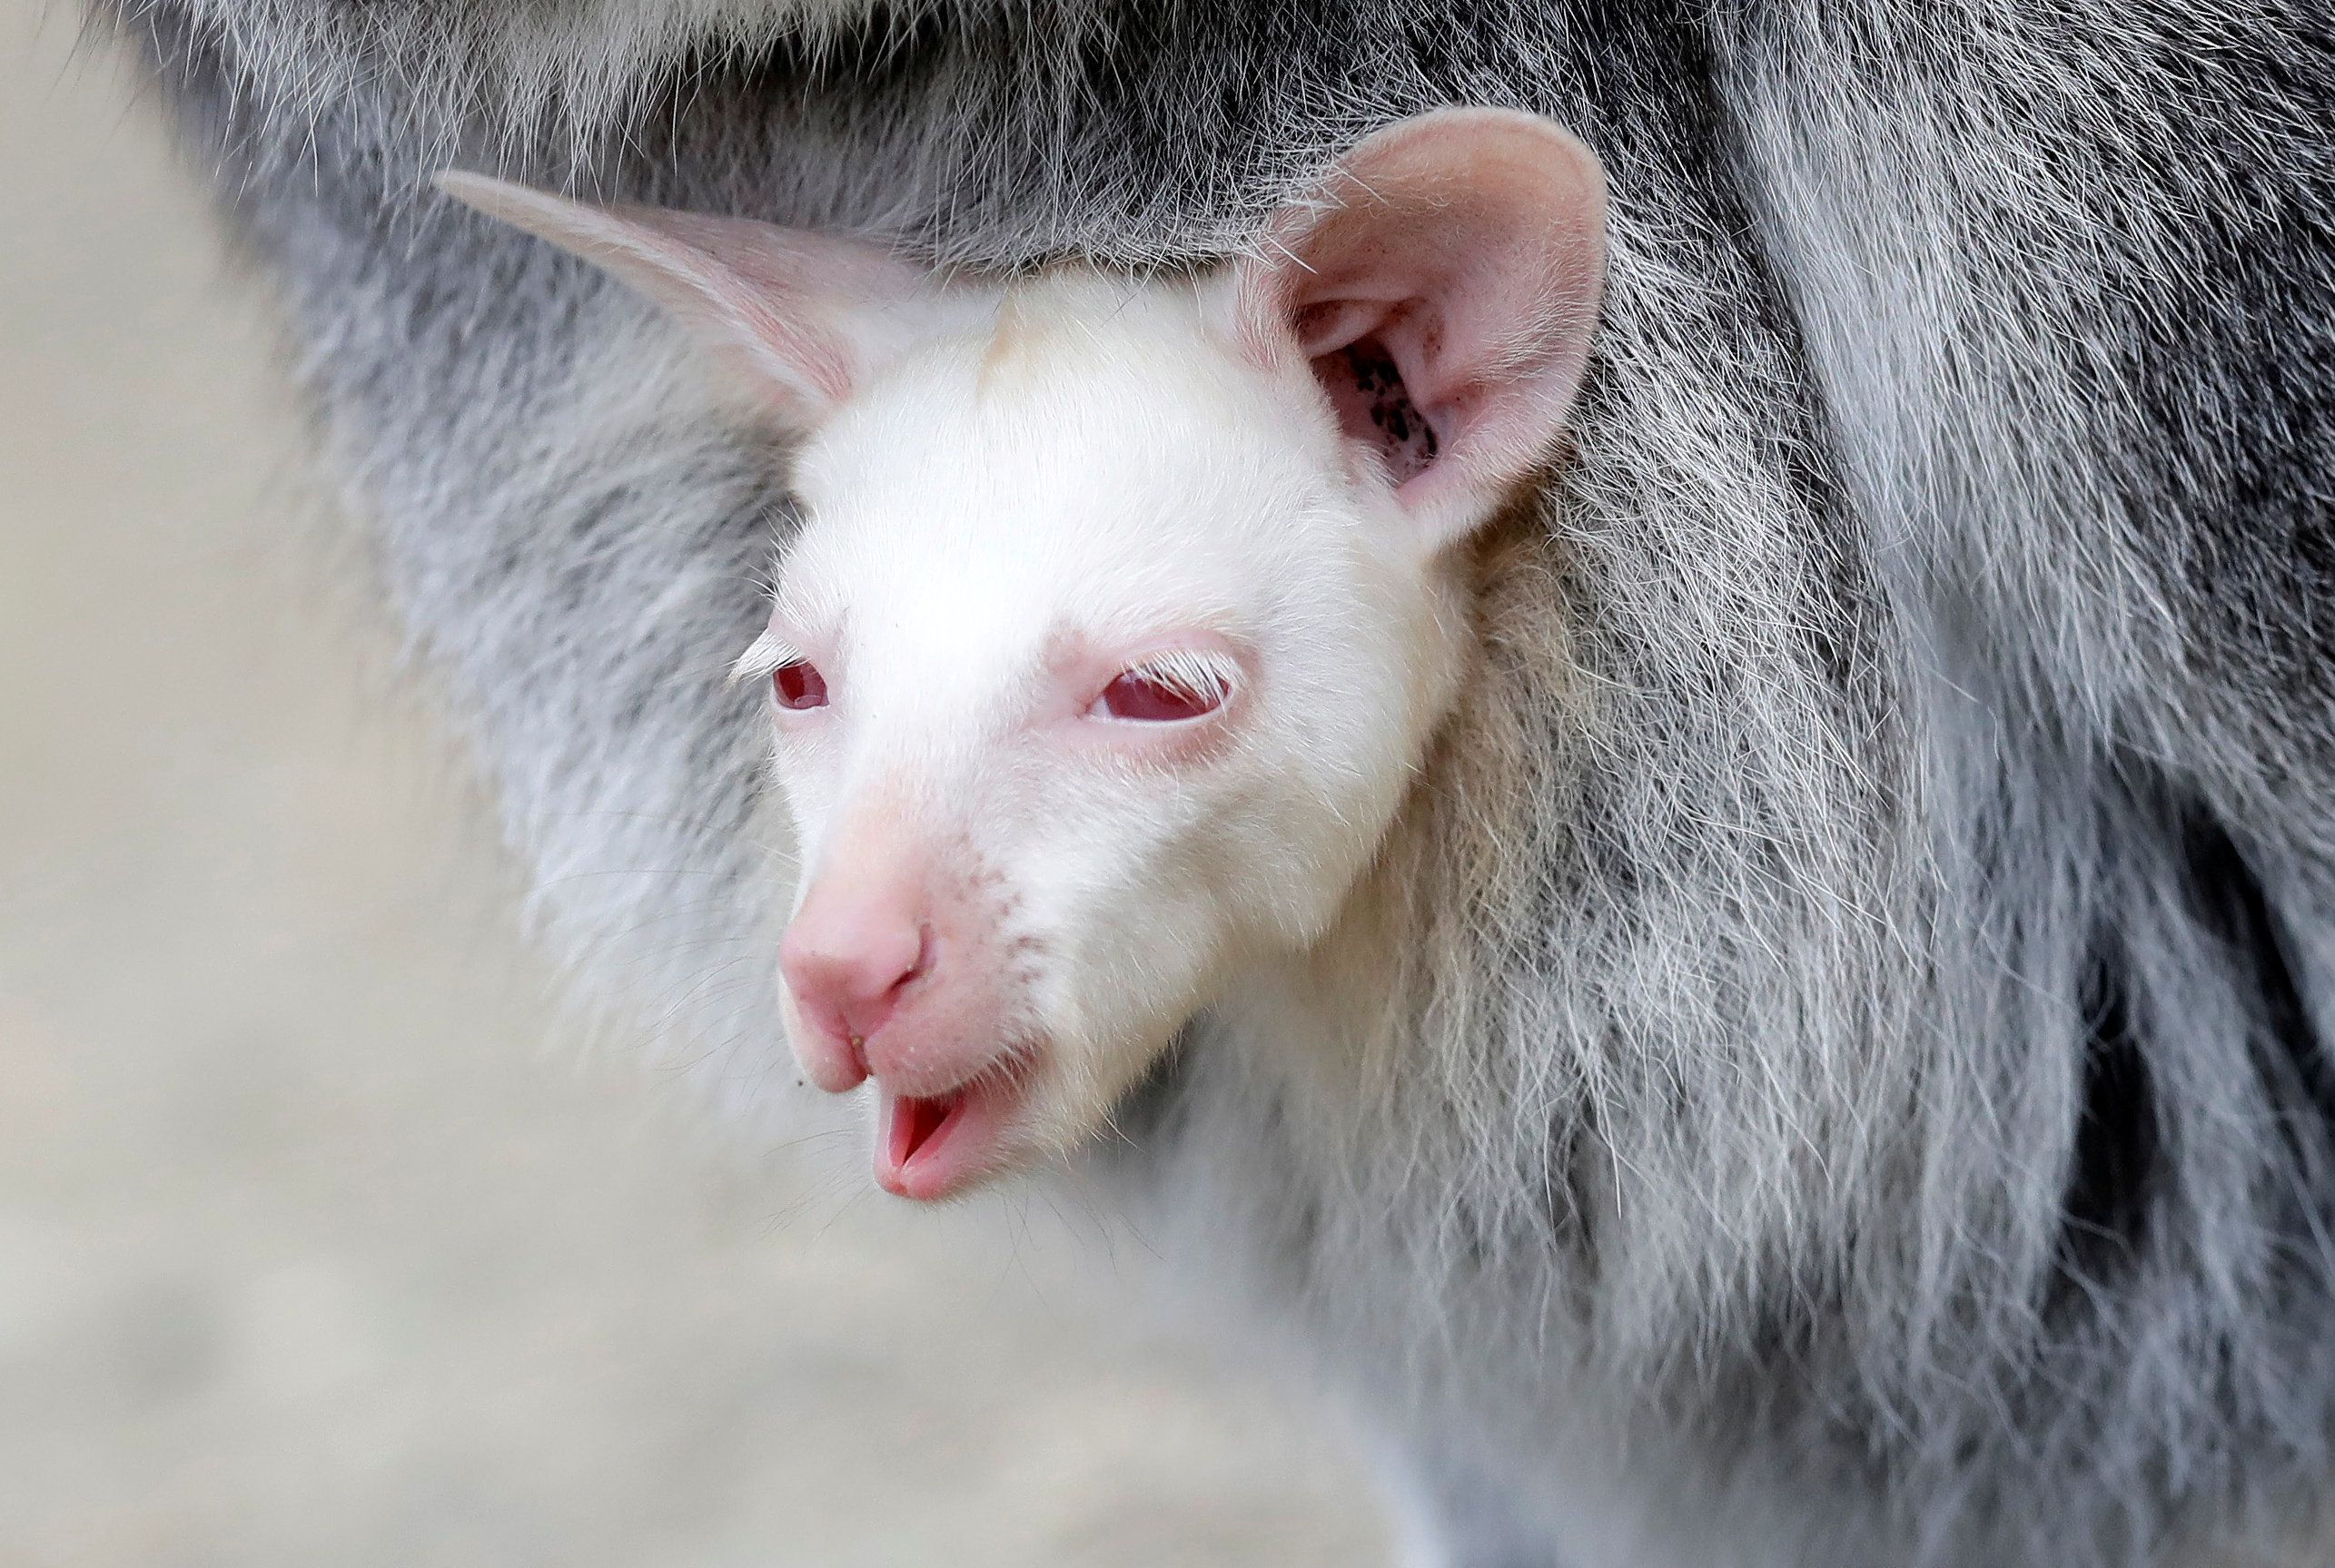 A newly born albino red-necked wallaby joey is being carried by its mother in their enclosure at the zoo in Decin, Czech Republic, March 13, 2019.  REUTERS/David W Cerny     TPX IMAGES OF THE DAY